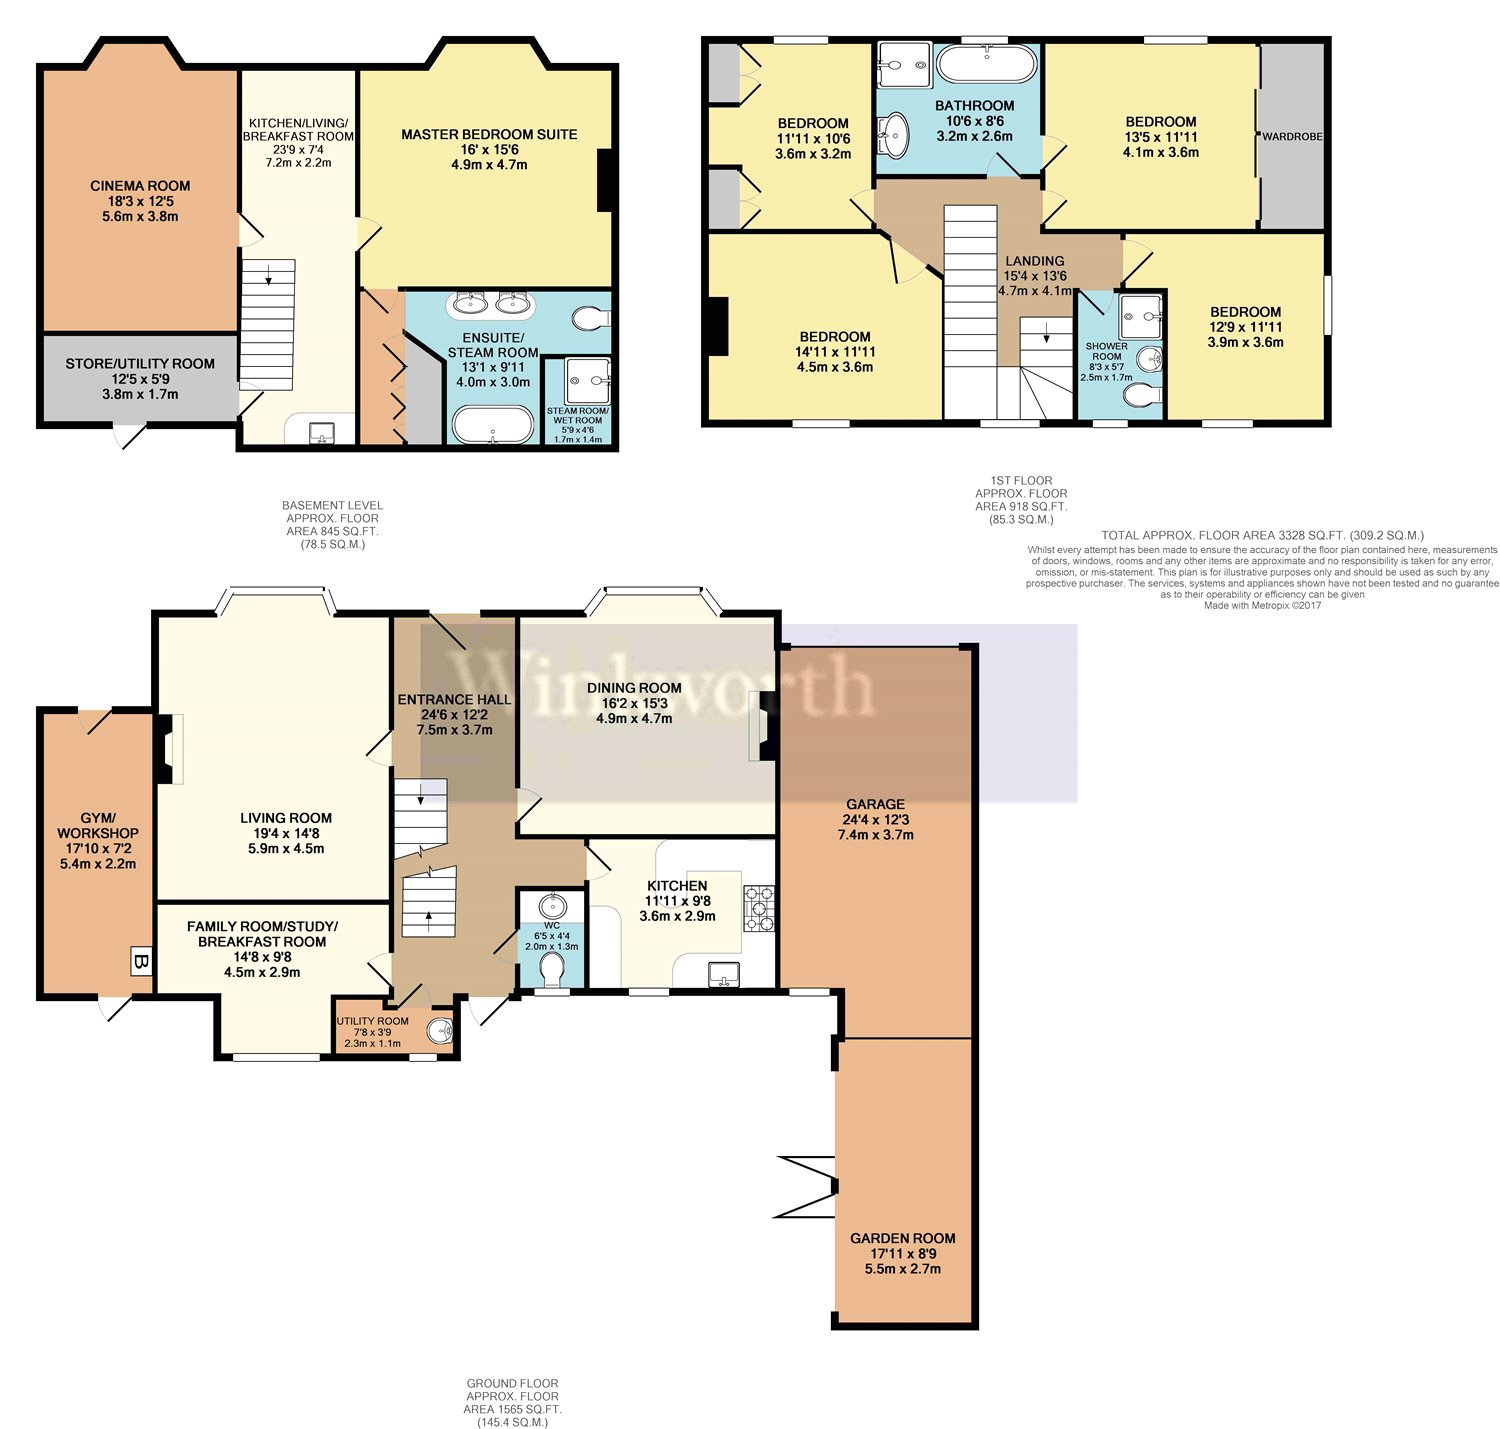 sofa beds reading berkshire wall set 5 bedroom property for sale in castle crescent